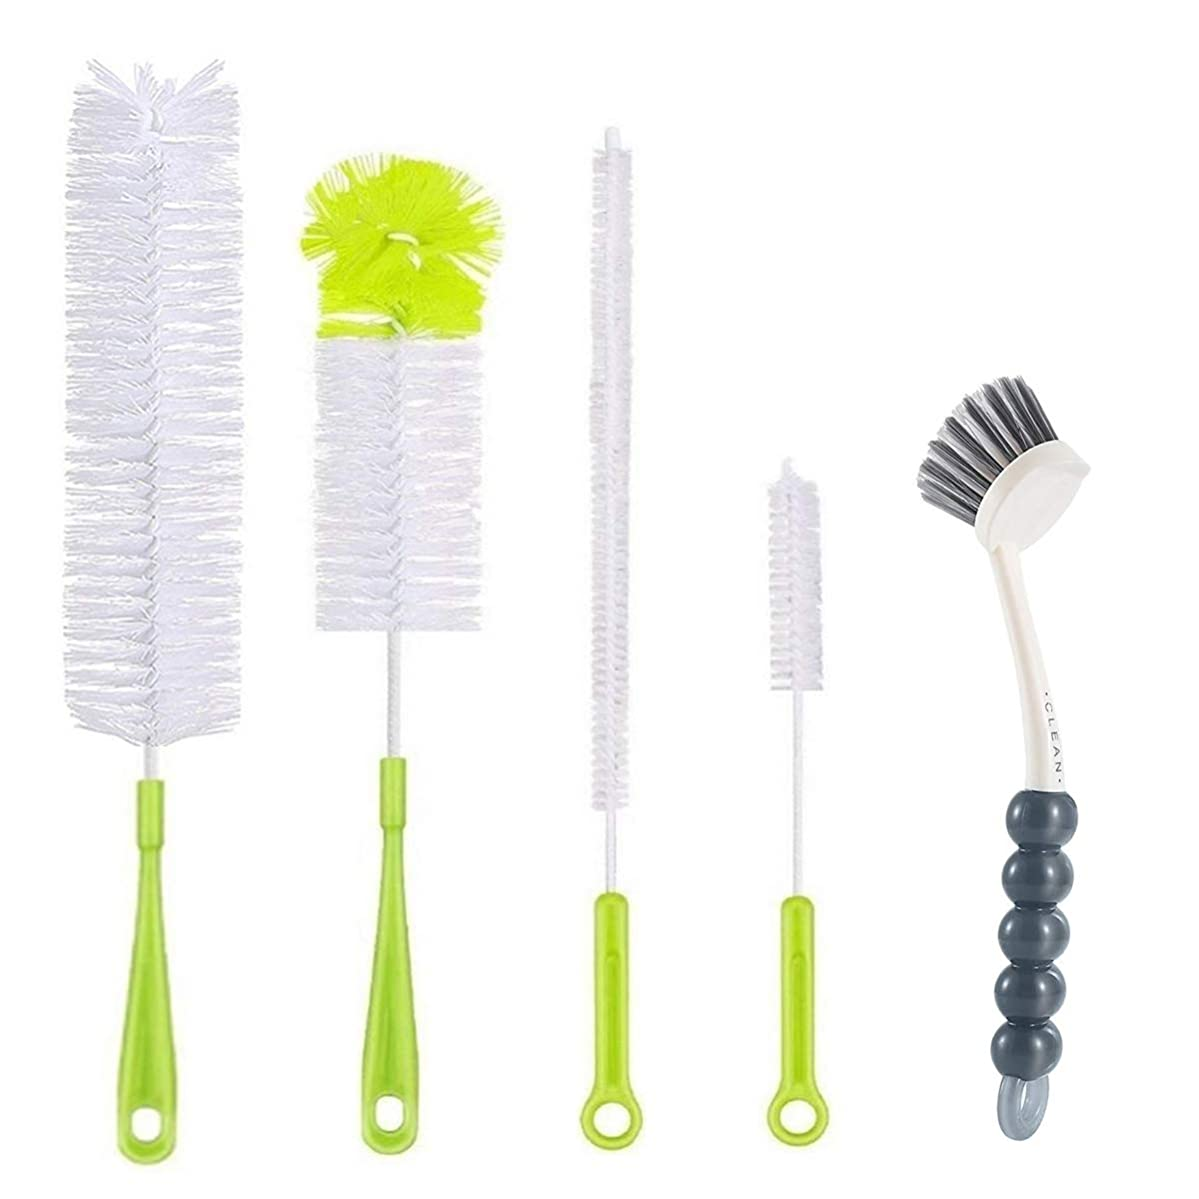 5Pcs Bottle Cleaning Brush Set-Long Handle Water Bottle Cleaner Brushes for Washing Wine Beer Baby Bottles,Include Grips Dish Brush|Bottle Brush|Kitchen Sink Brush|Straw Brush|Kettle Spout|Lid Brush